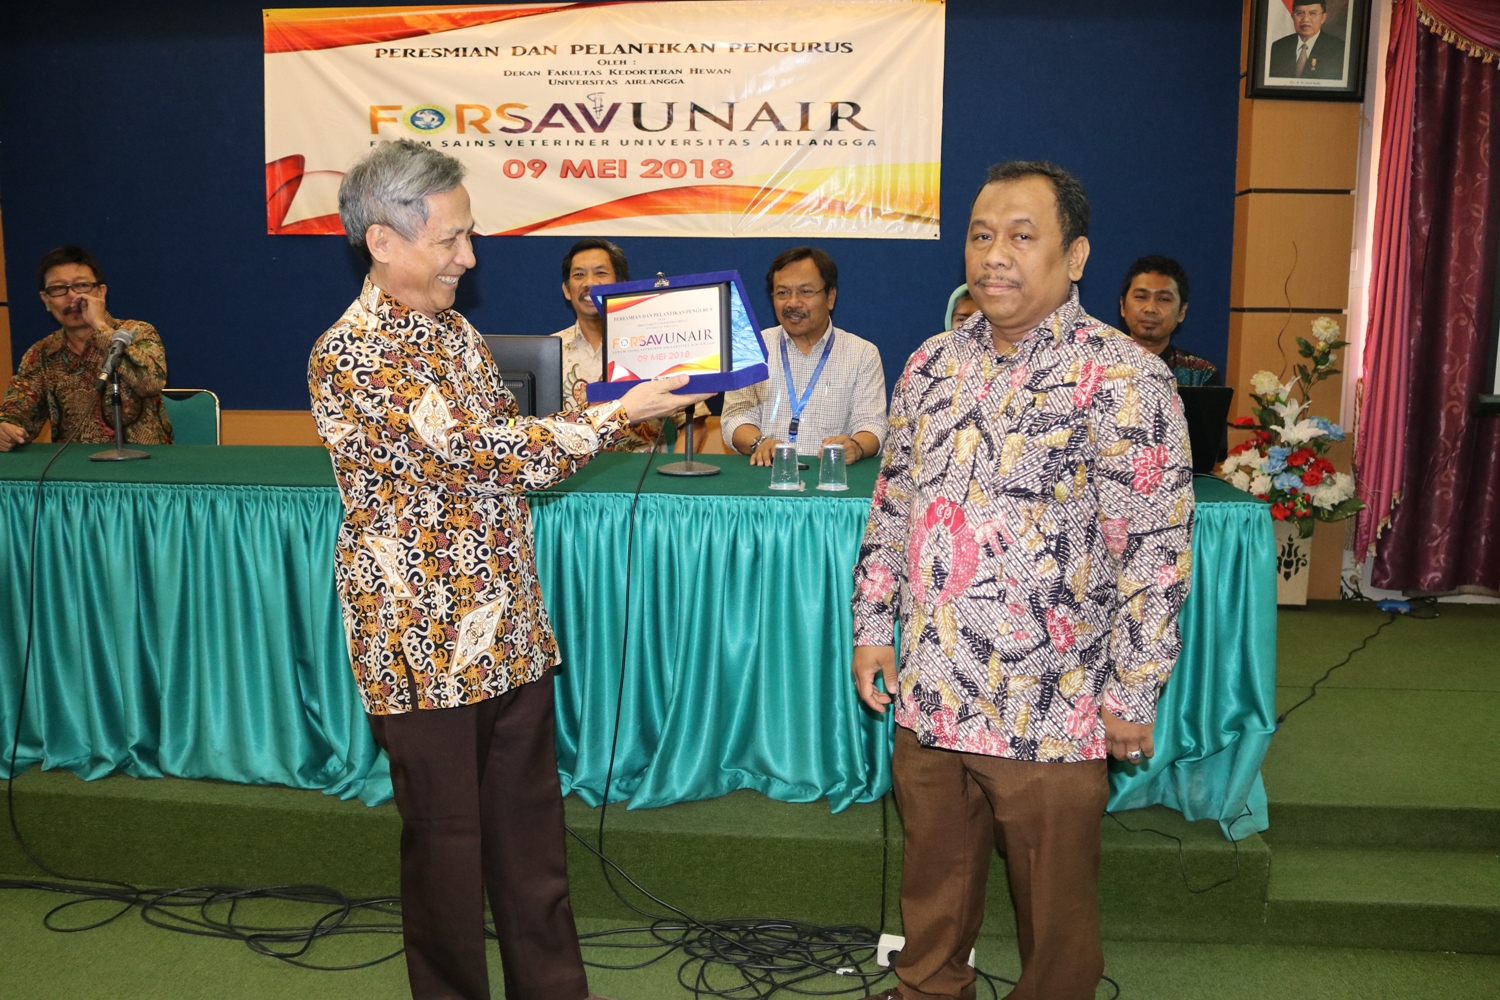 Forum Sains Veteriner Universitas Airlangga